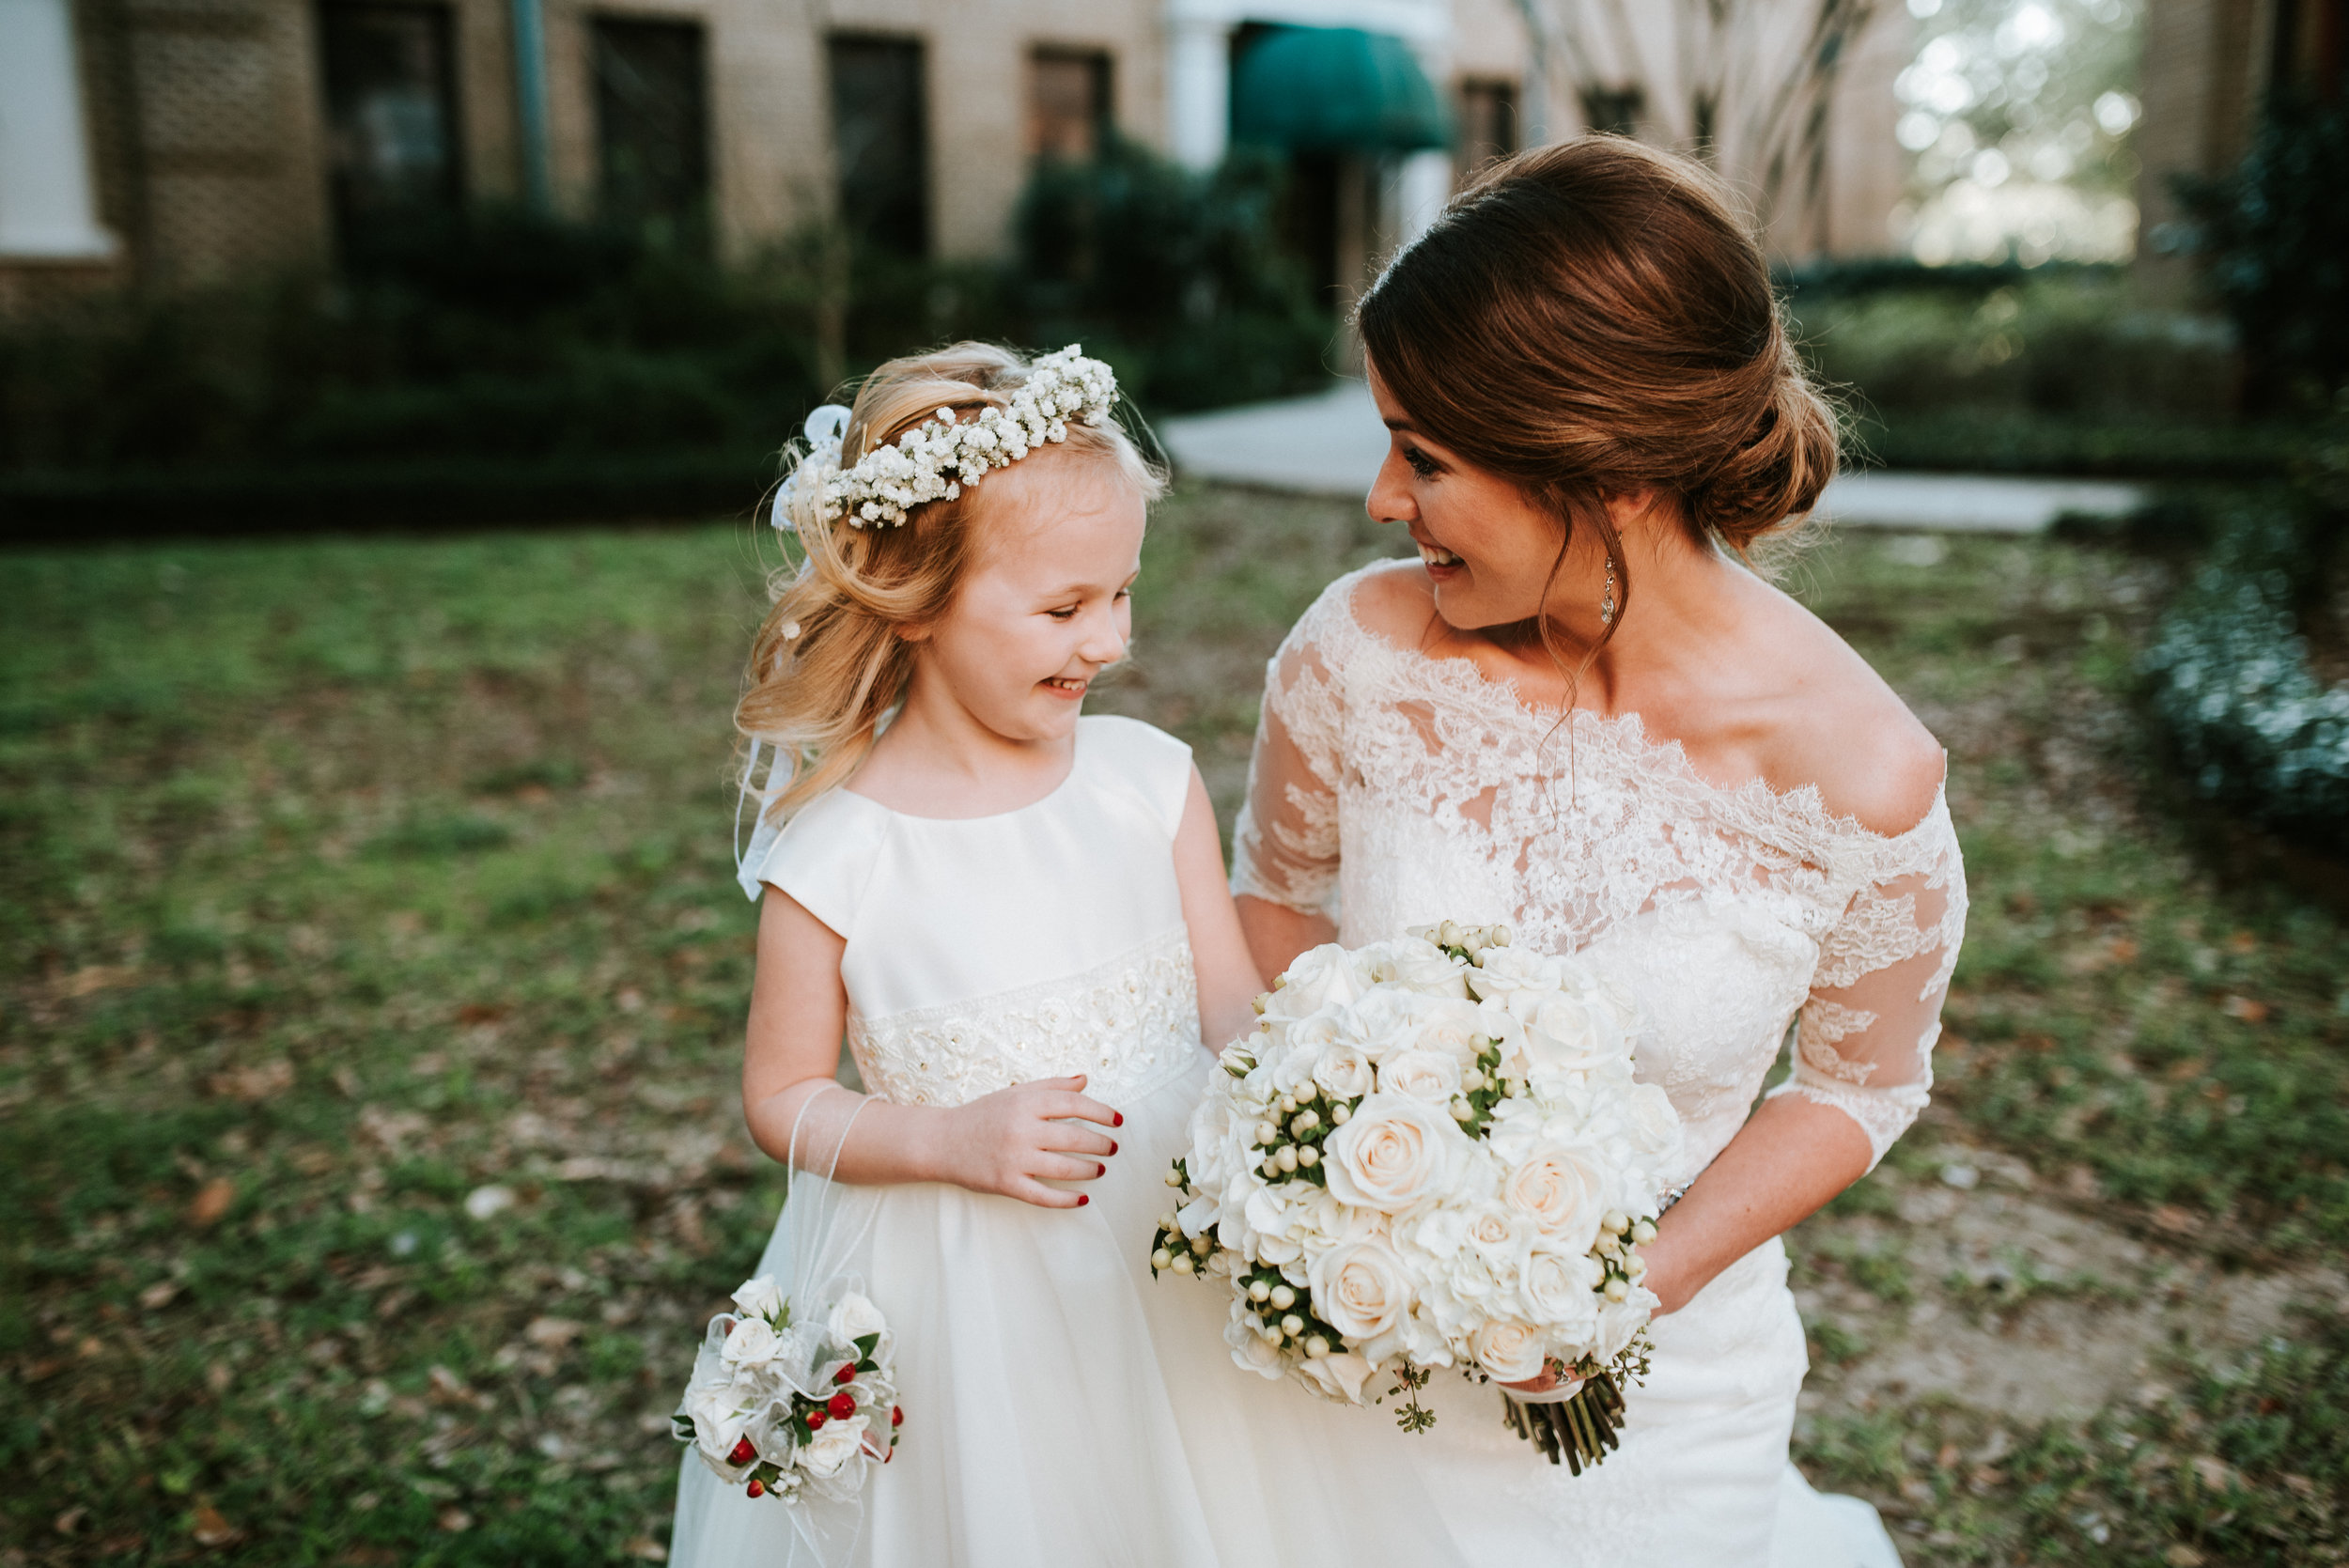 Southern Fete, Southern Wedding, Bride and Flower girl